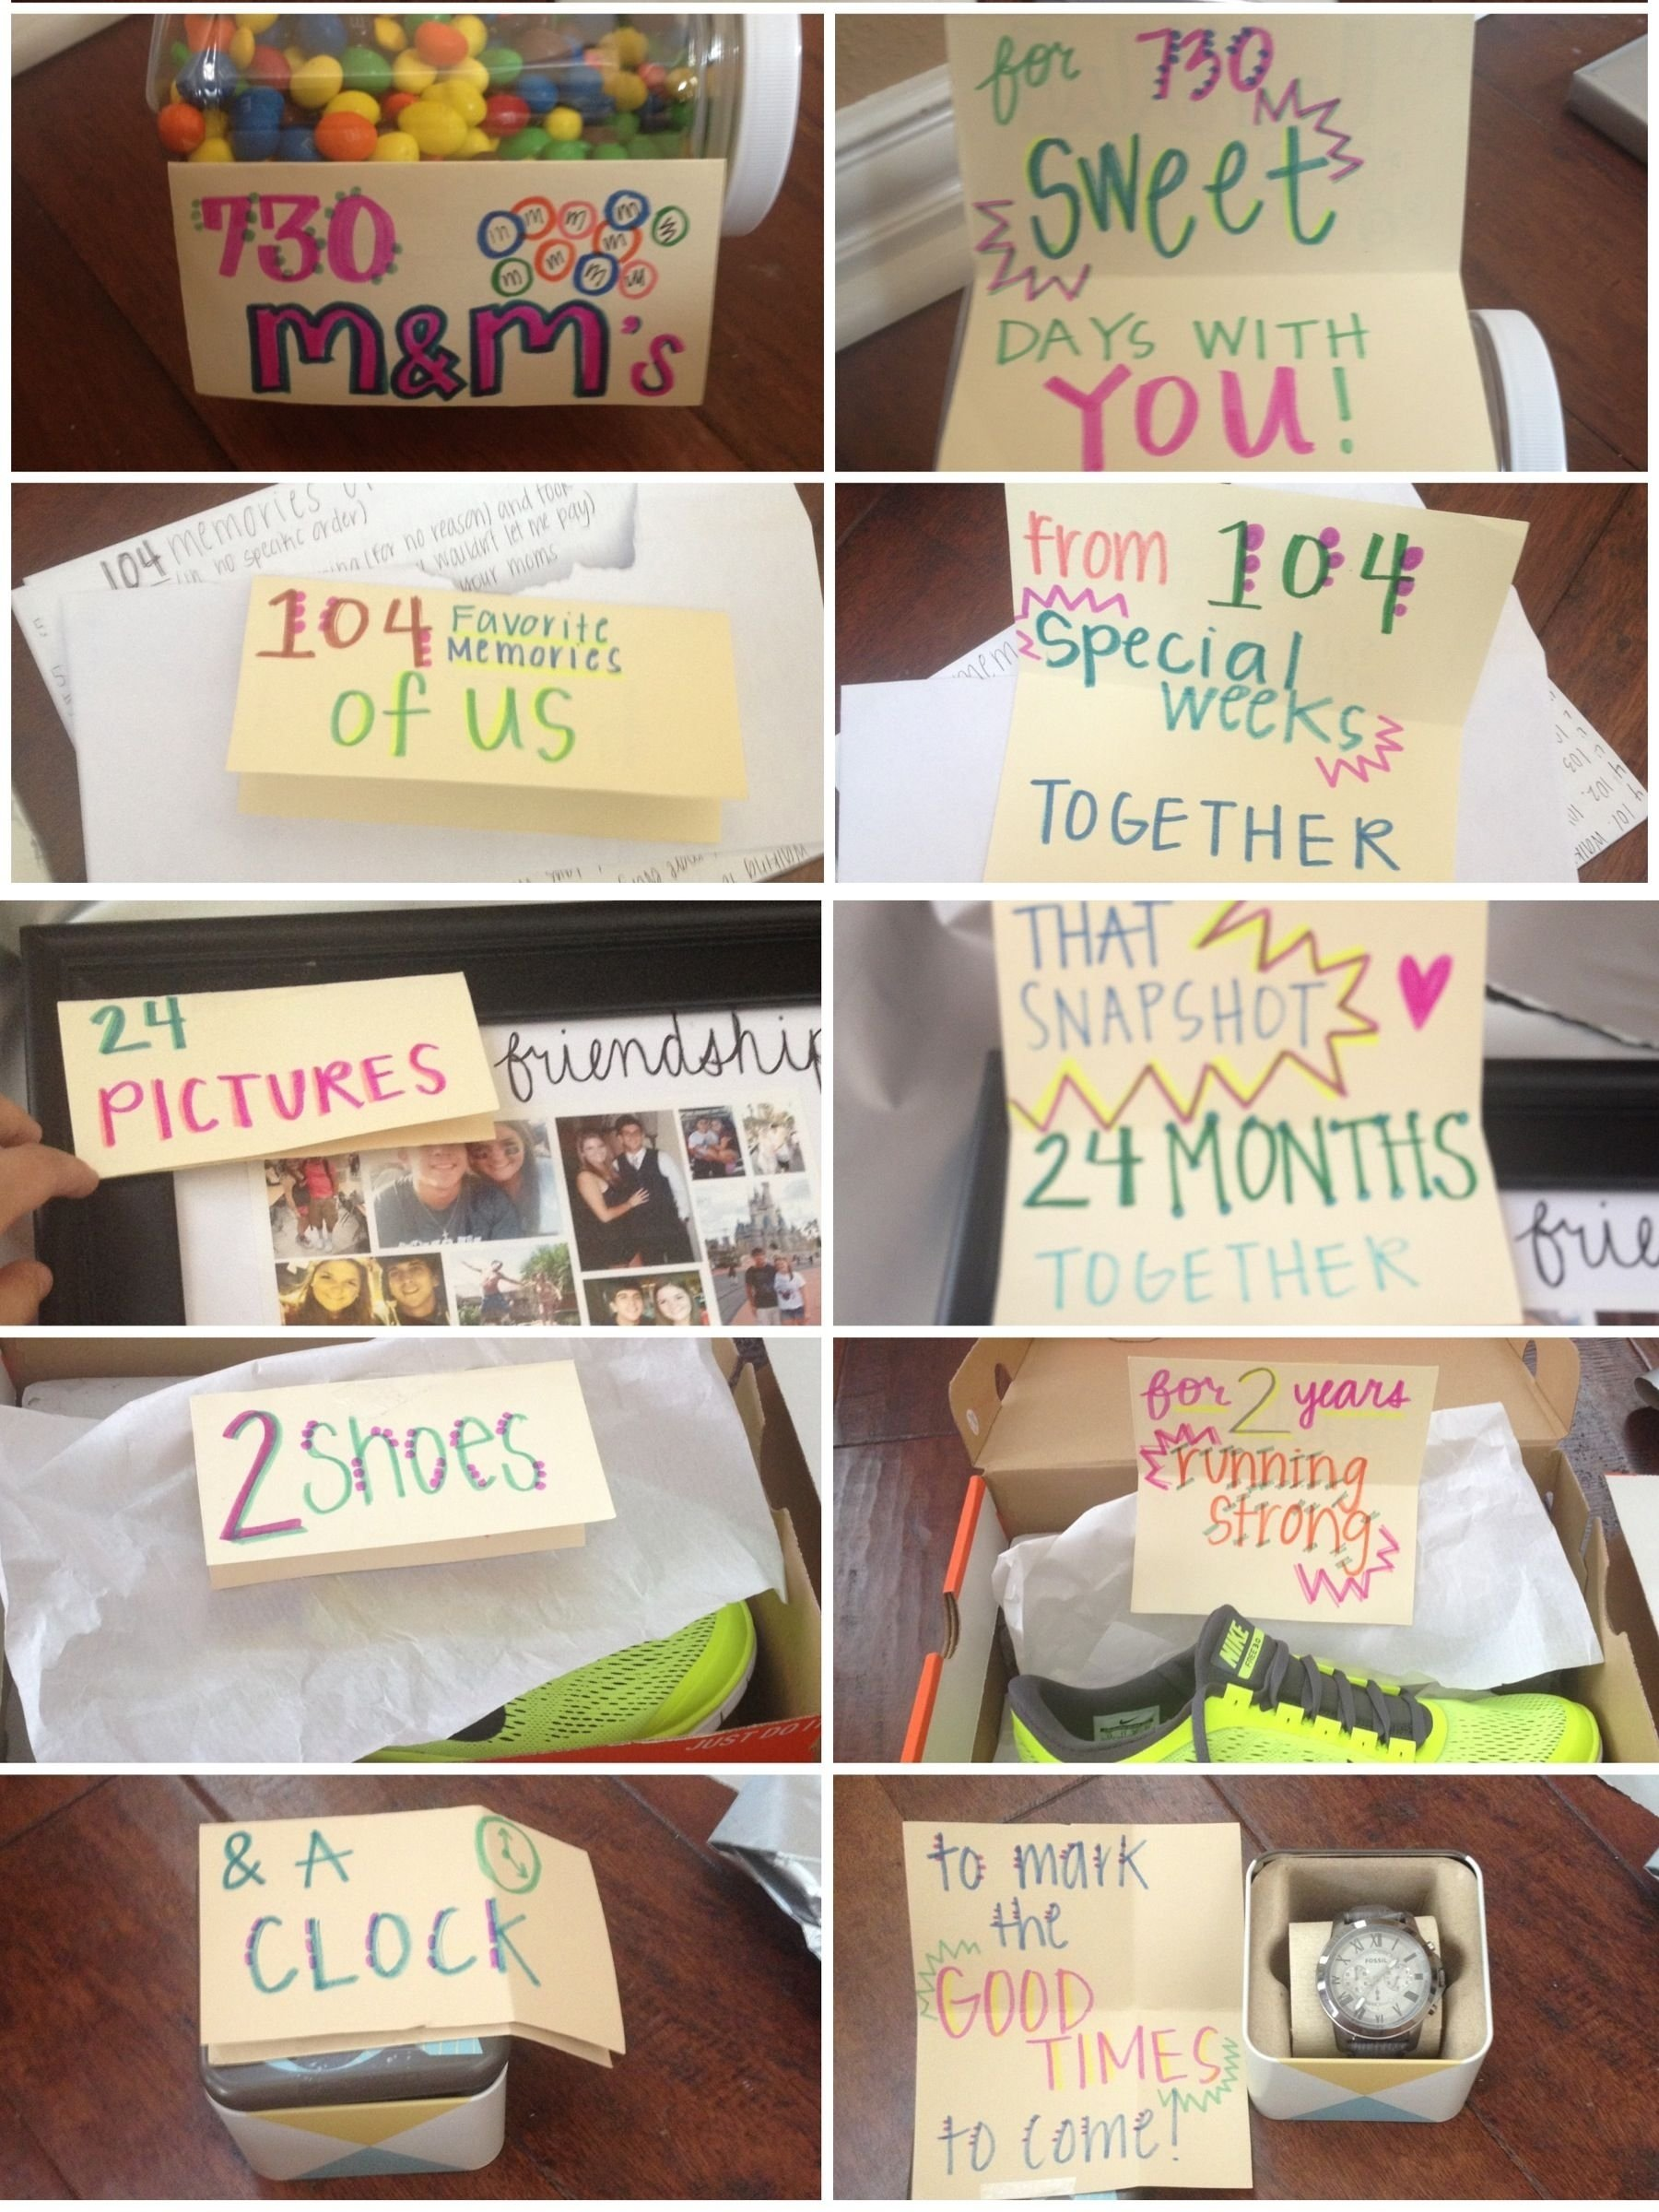 10 Most Popular 2 Year Anniversary Gift Ideas For Boyfriend even though the two years has passed i could use this for 12 2020